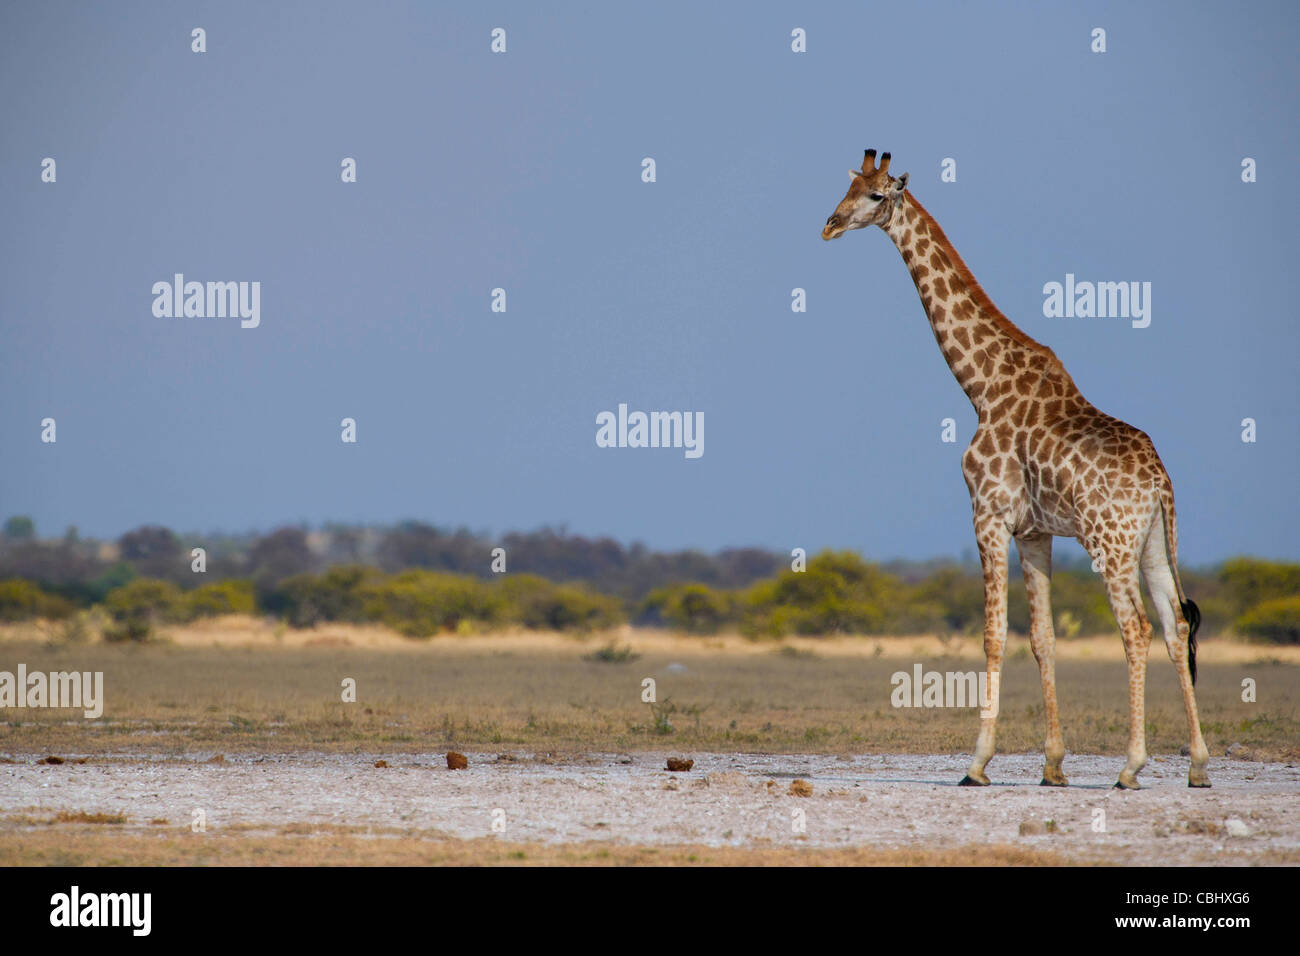 A giraffe (Giraffa camelopardalis) captured on one of the salt pans in Nxai Pan National Park, Botswana - Stock Image